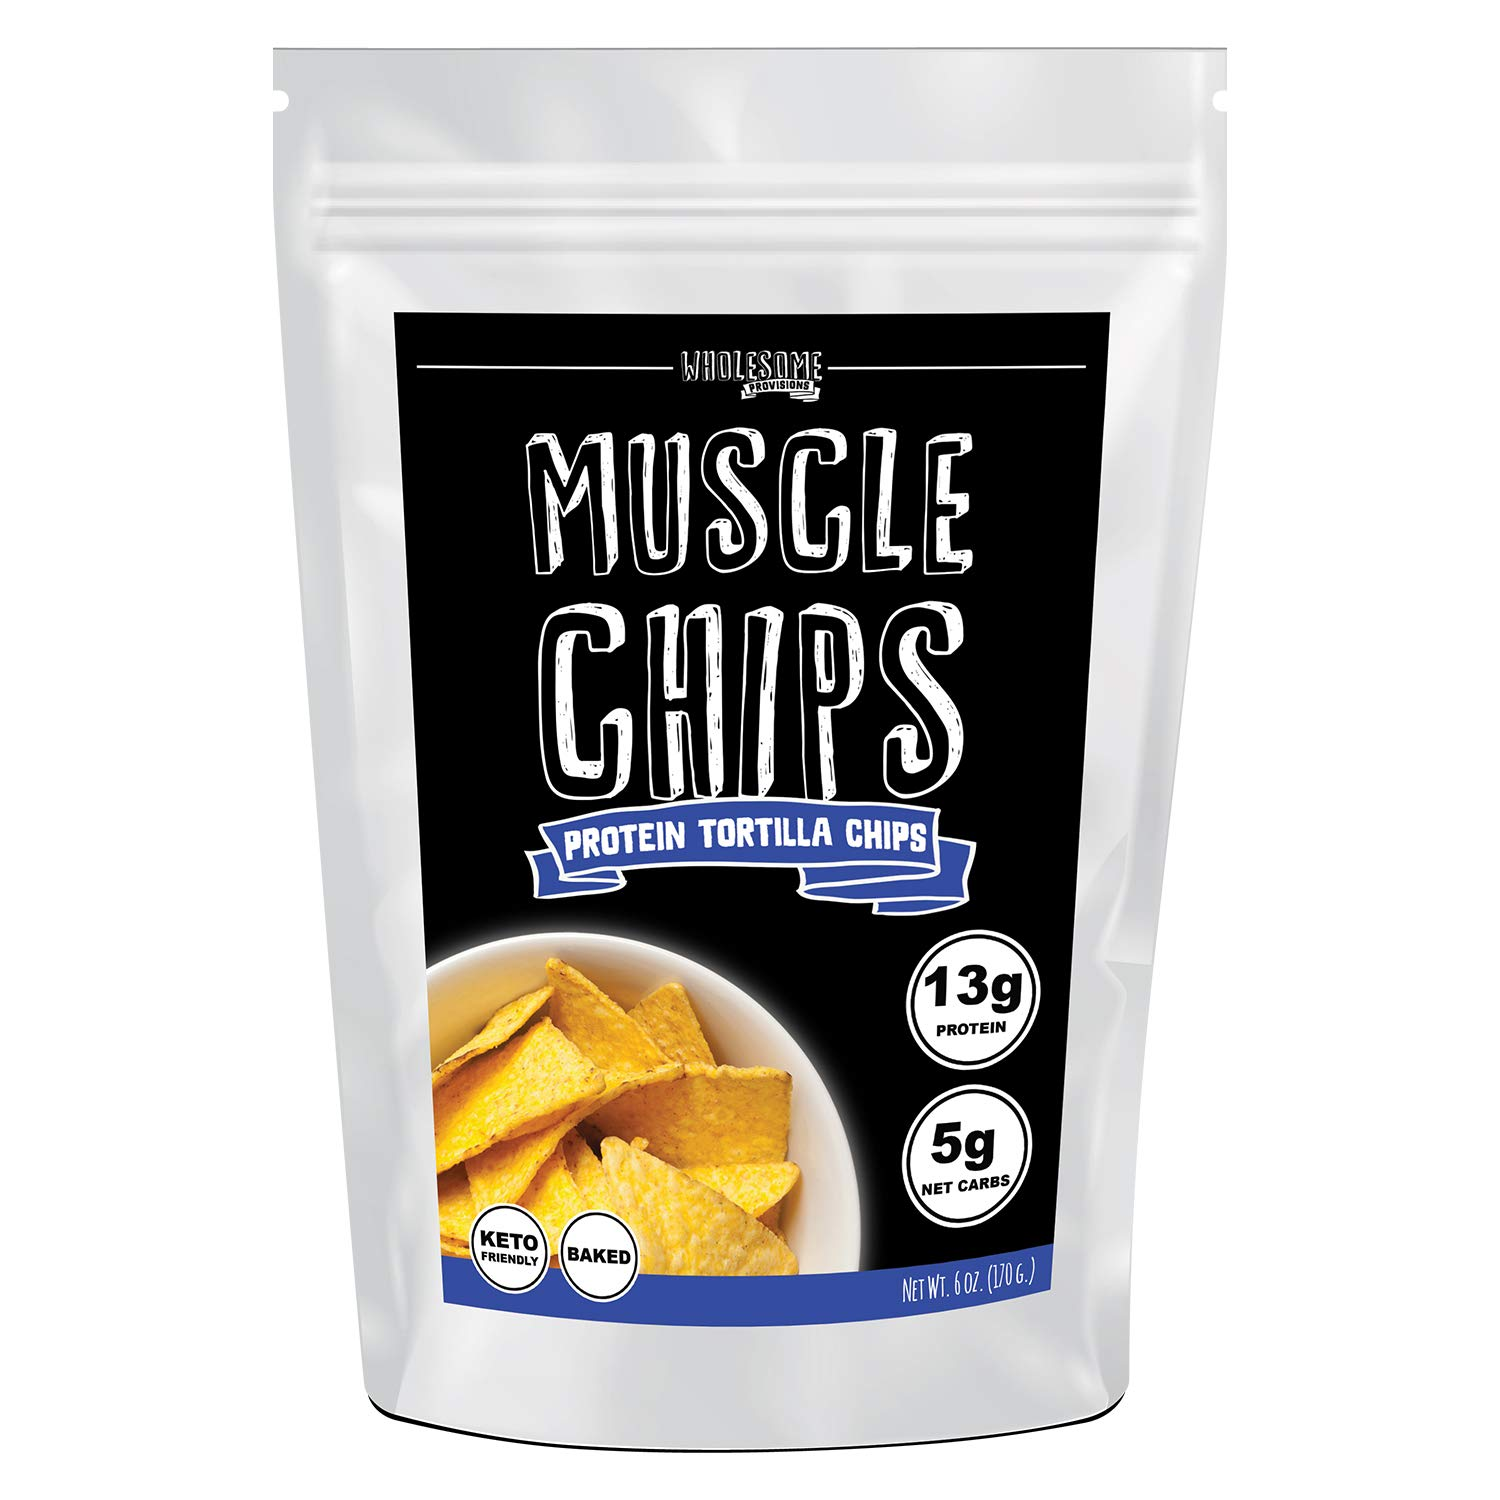 Protein Chips, 13g Protein, 5g Net Carbs, Keto Snacks, Low Carb Snacks, Protein Tortilla Chips, Muscle Chips, Baked Not Fried (1 Pack) by Wholesome Provisions